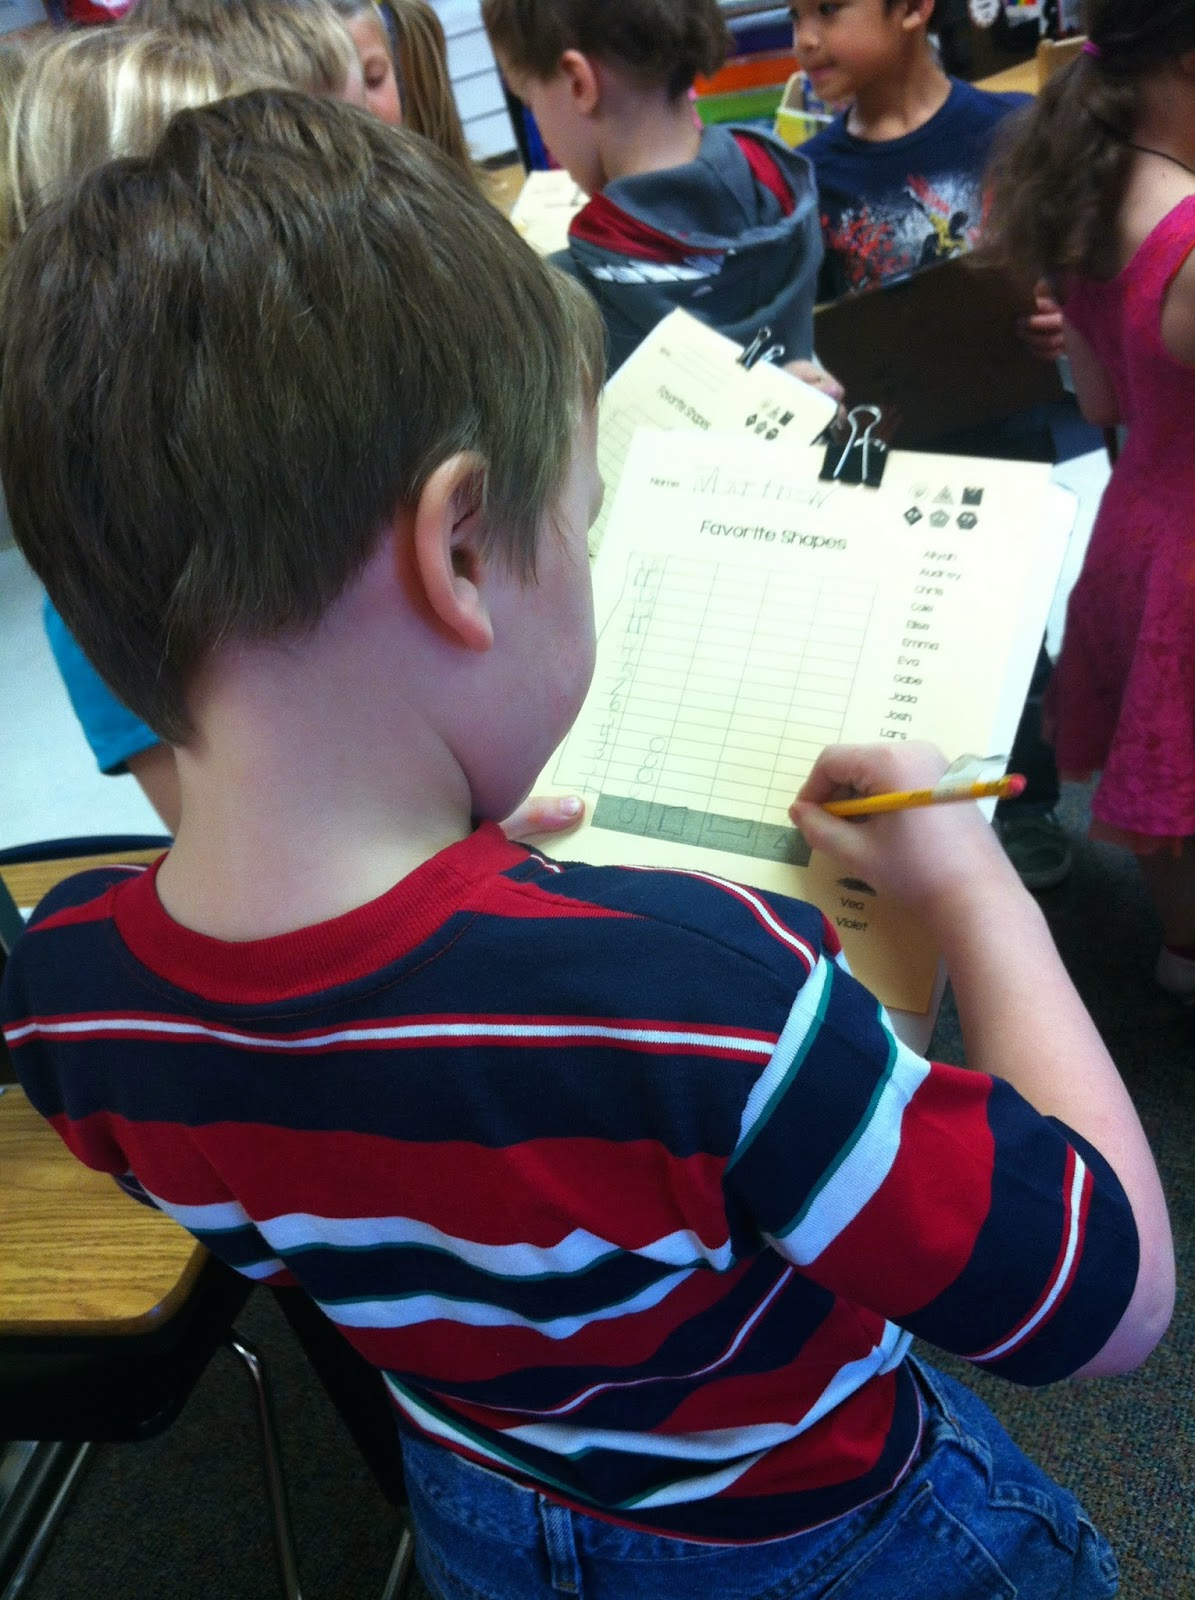 A guest blog post from Jaime and she talks about her favorite three things in the classroom!